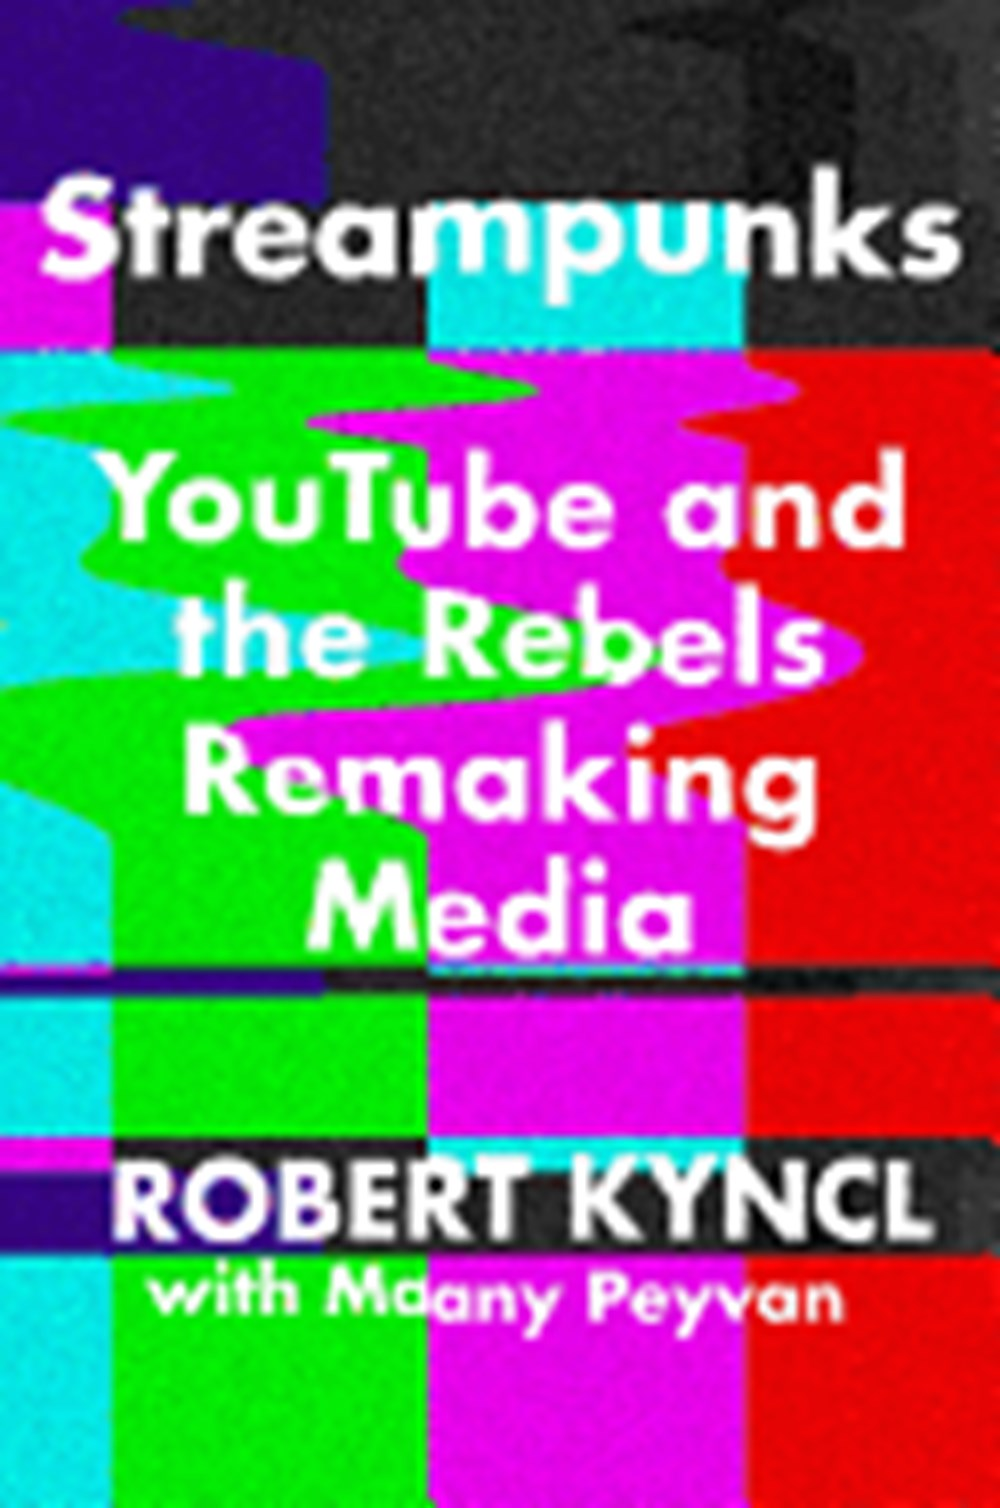 Streampunks Youtube and the Rebels Remaking Media